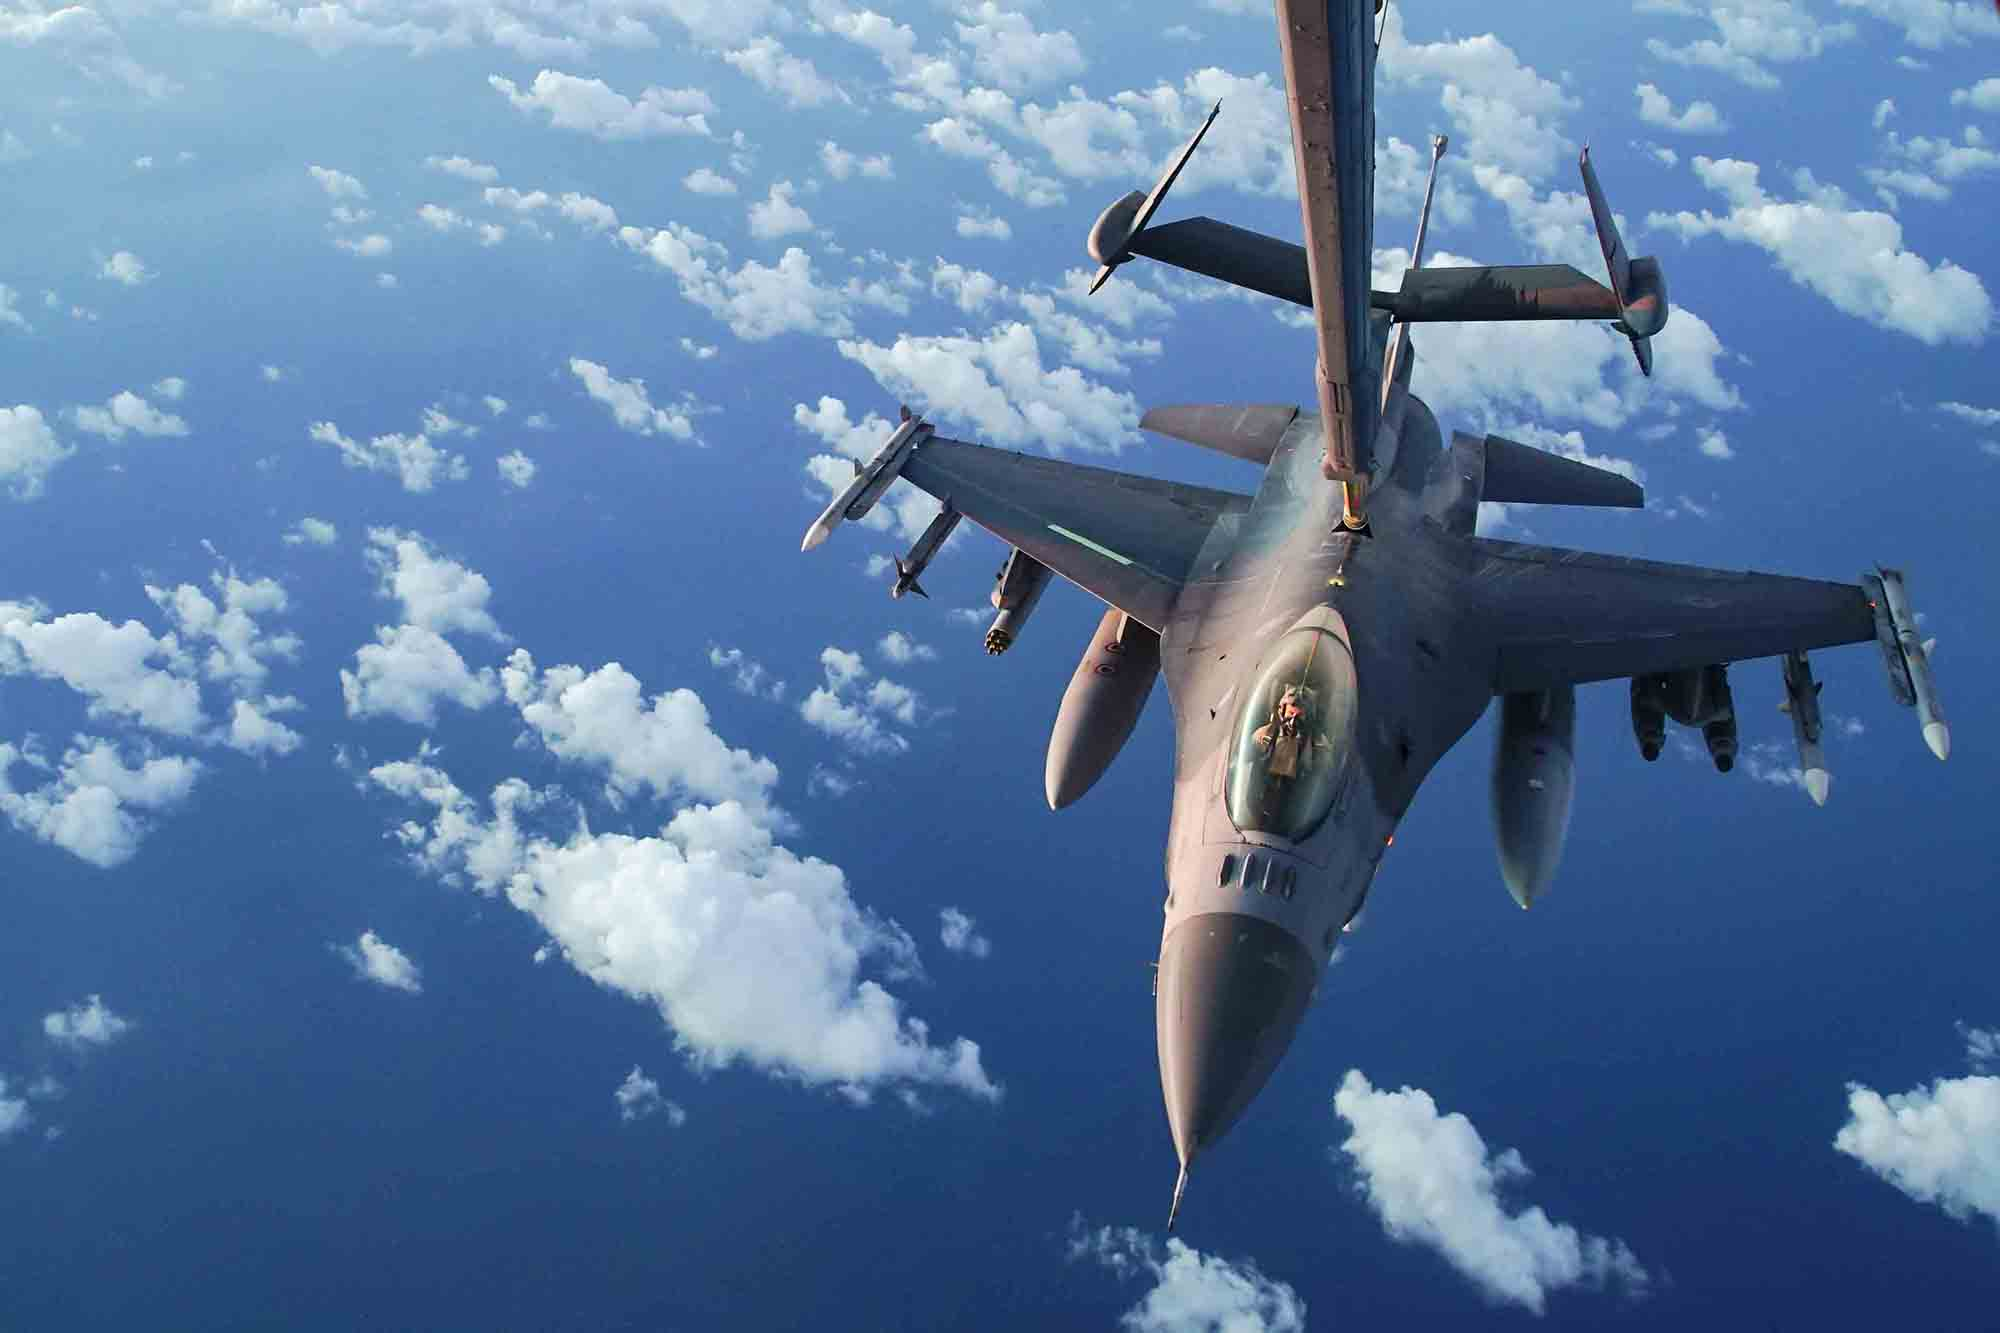 A U.S. Air Force F-16 Fighting Falcon receives fuel from a U.S. Air Force KC-10 Extender during an n-air refueling mission supporting Operation Octave Quartz with armed over-watch in Africa, Jan. 9, 2020. (Staff Sgt. Taylor Harrison/Air Force)